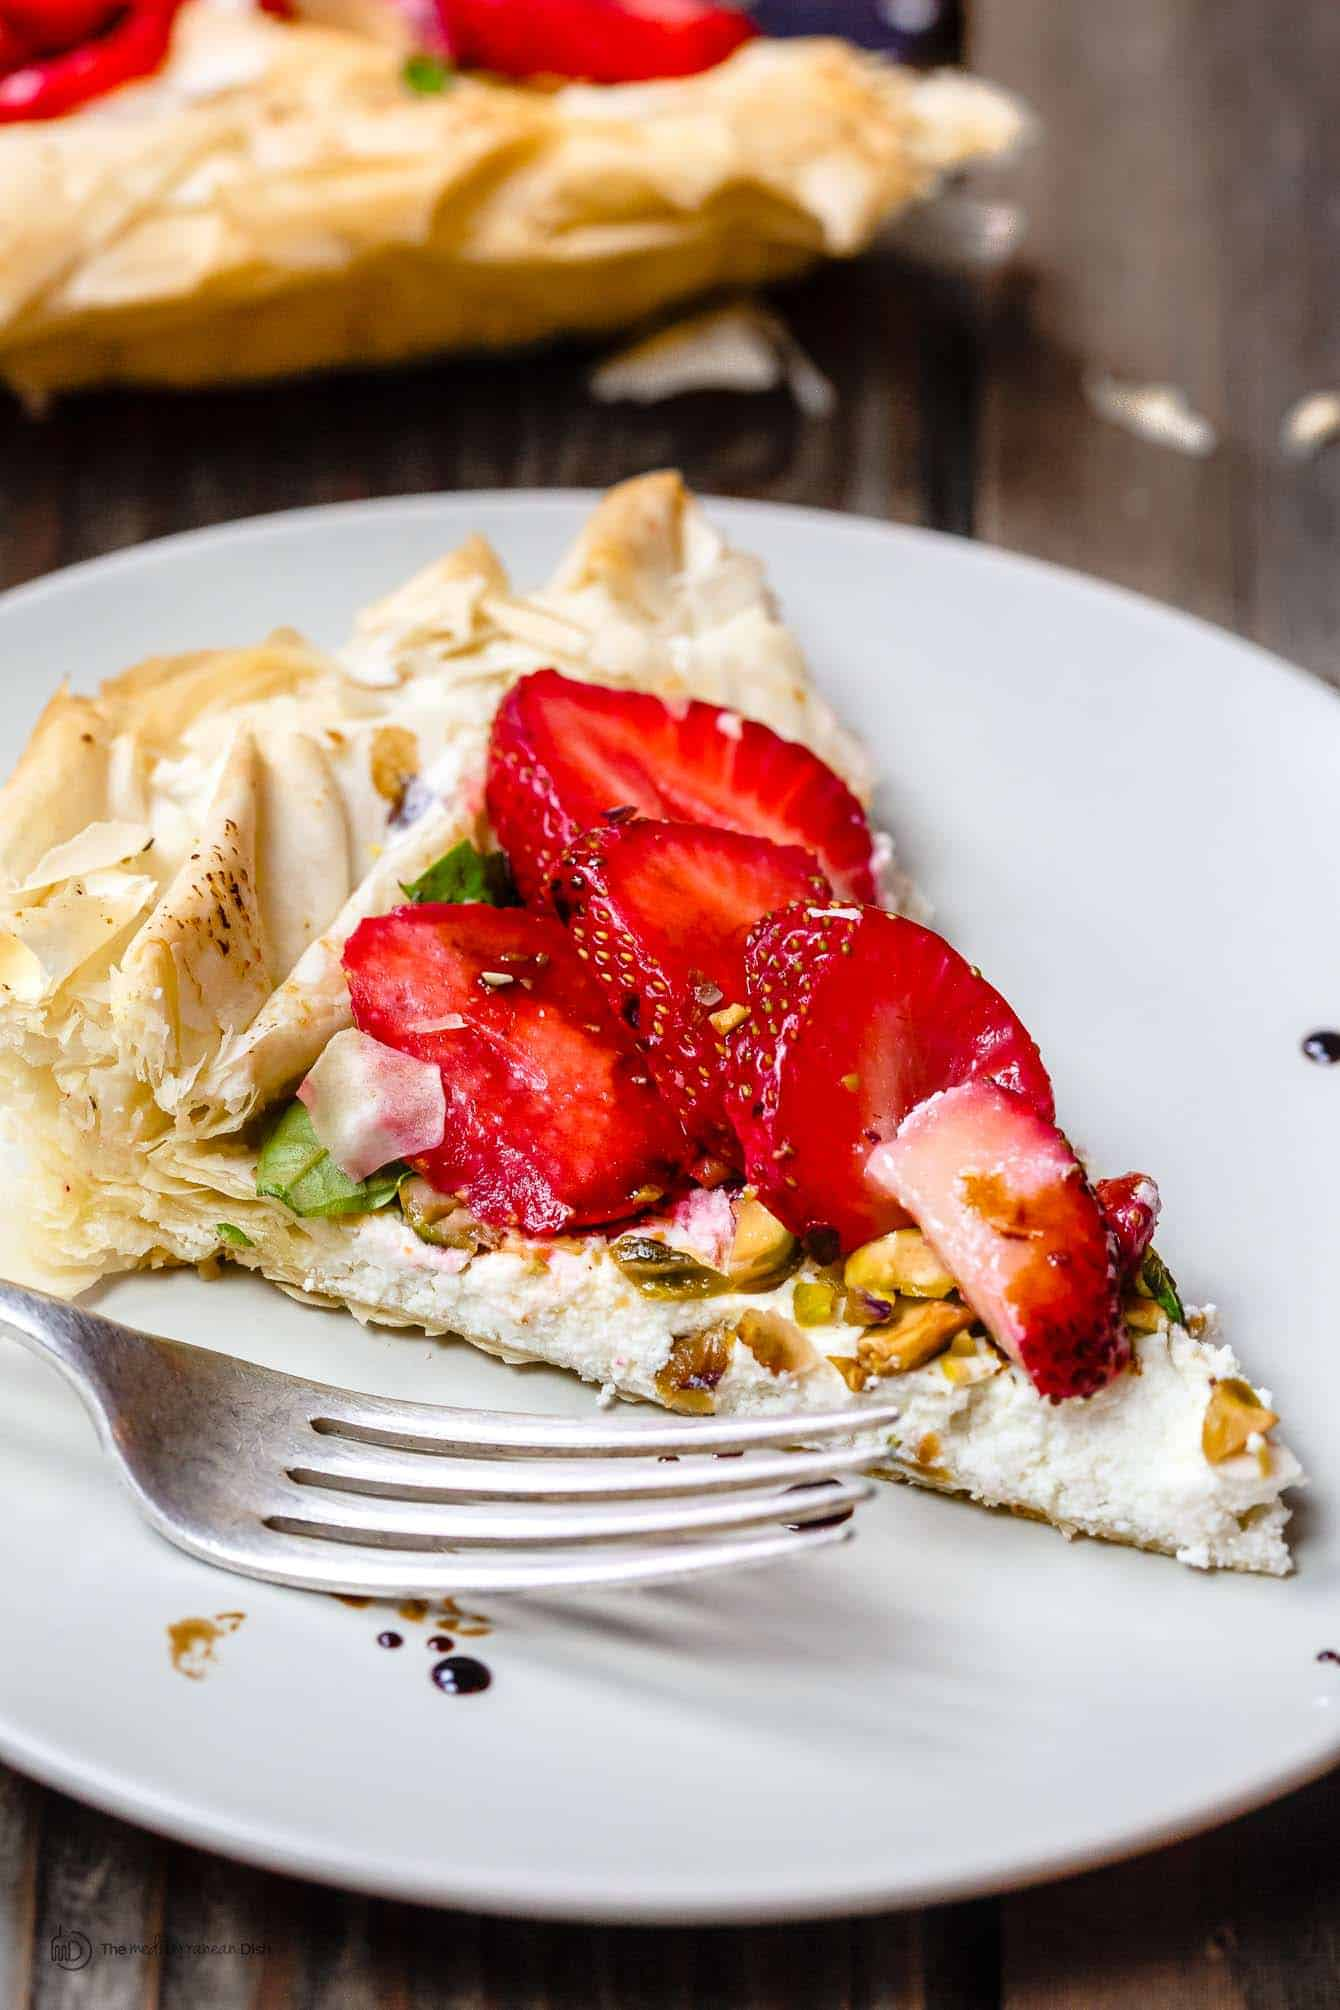 Slice of Strawberry Tart garnished with crushed nuts